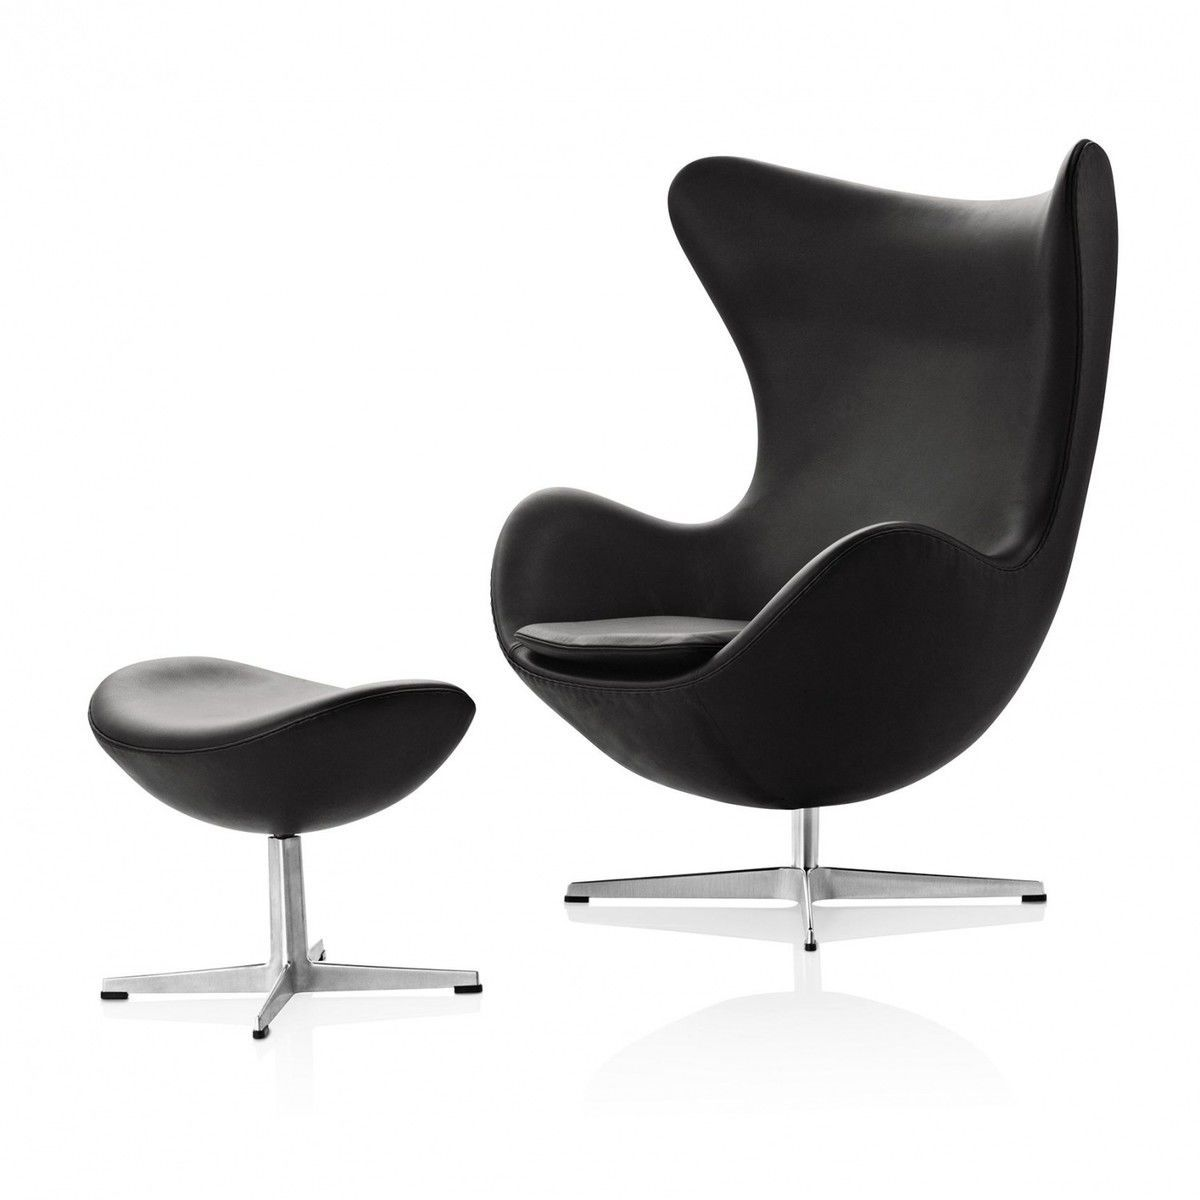 egg chair das ei loungesessel leder fritz hansen. Black Bedroom Furniture Sets. Home Design Ideas